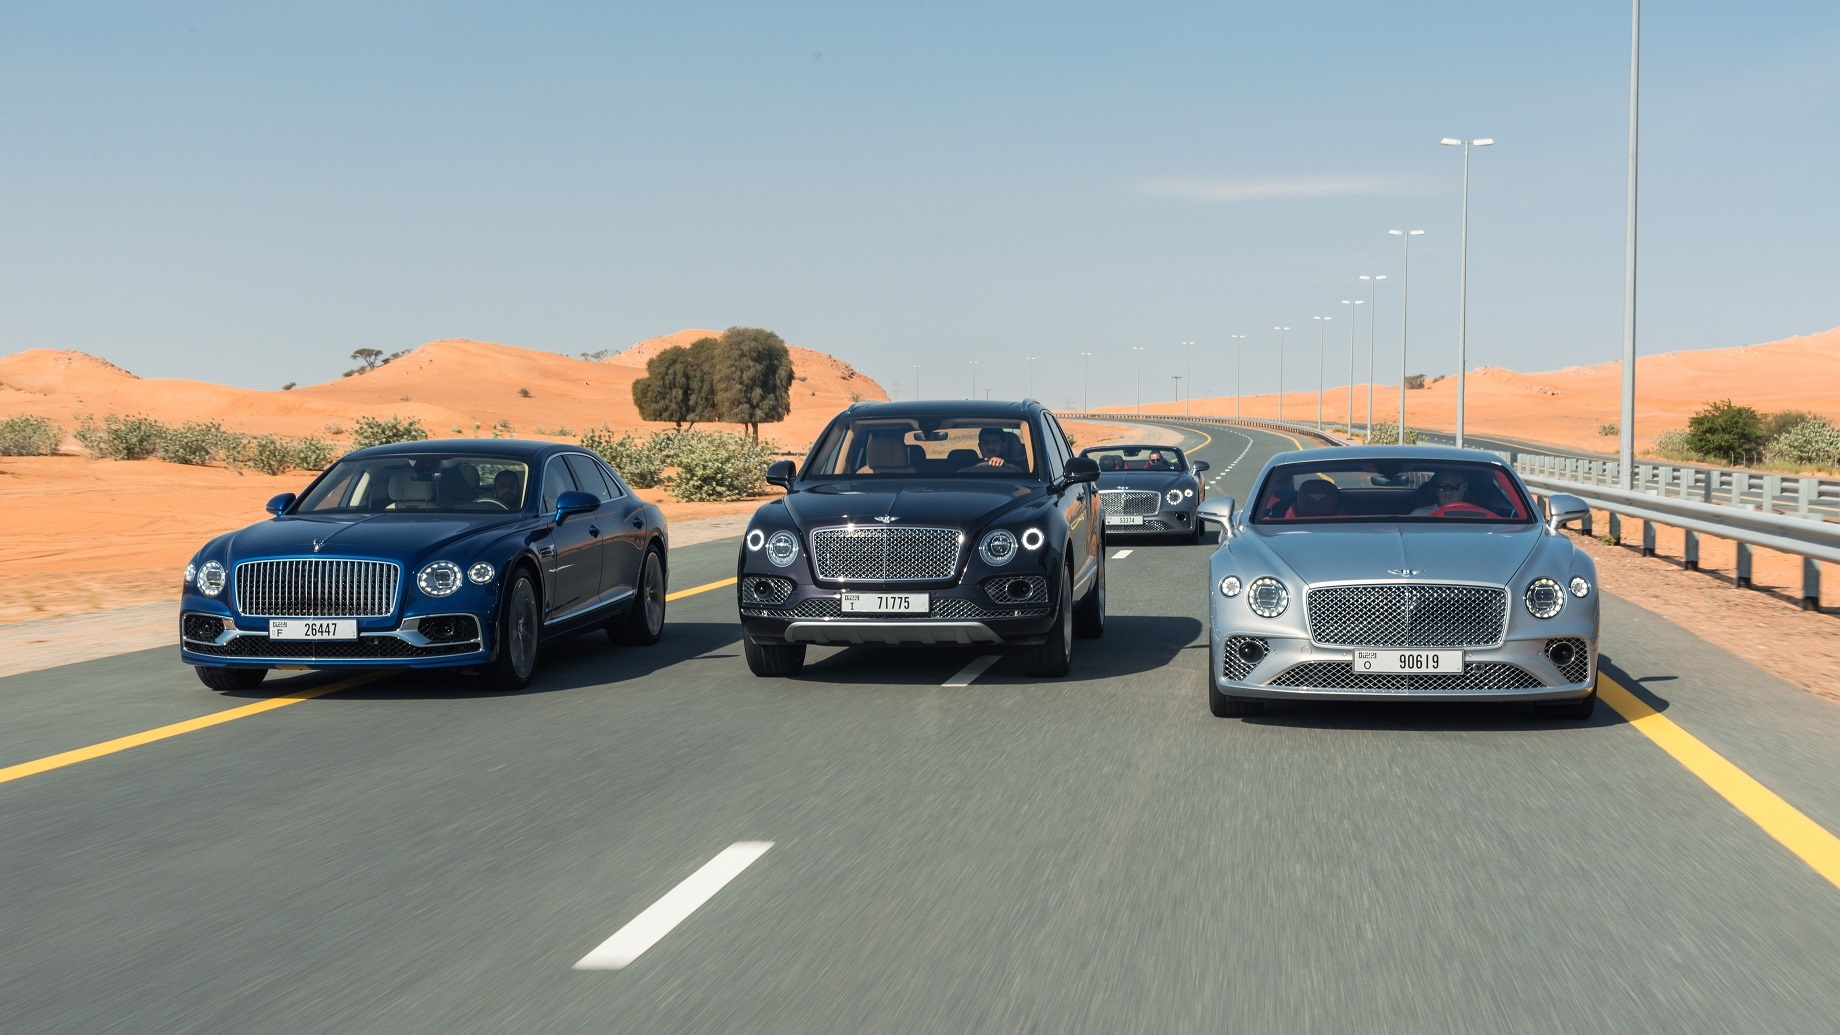 Bentley Completes Centenary Celebrations with Landmark Gathering of 100 Cars in Dubai